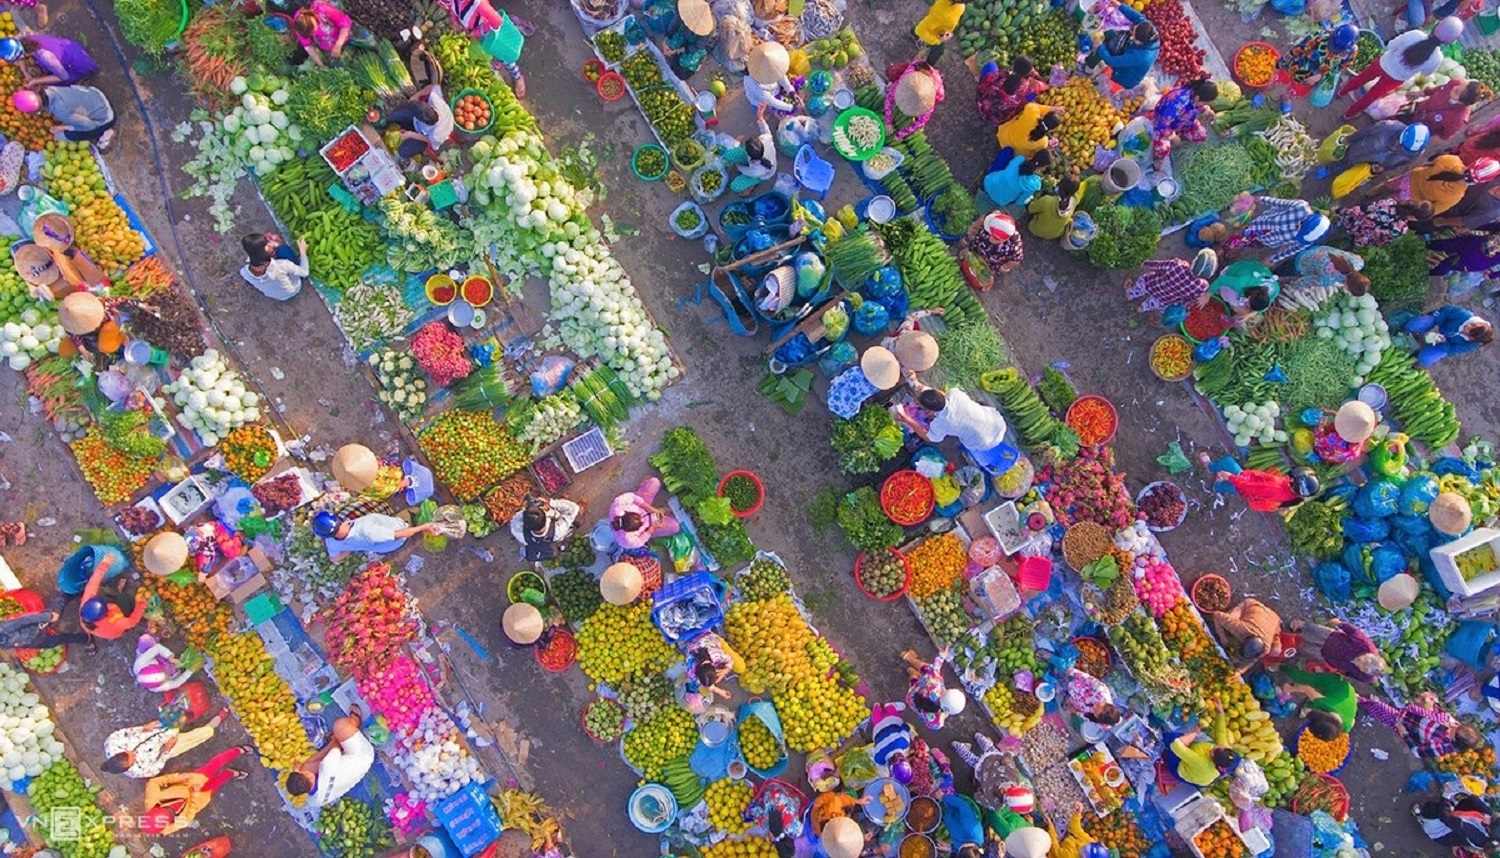 Hau Giang market displays magnetism of Mekong Delta